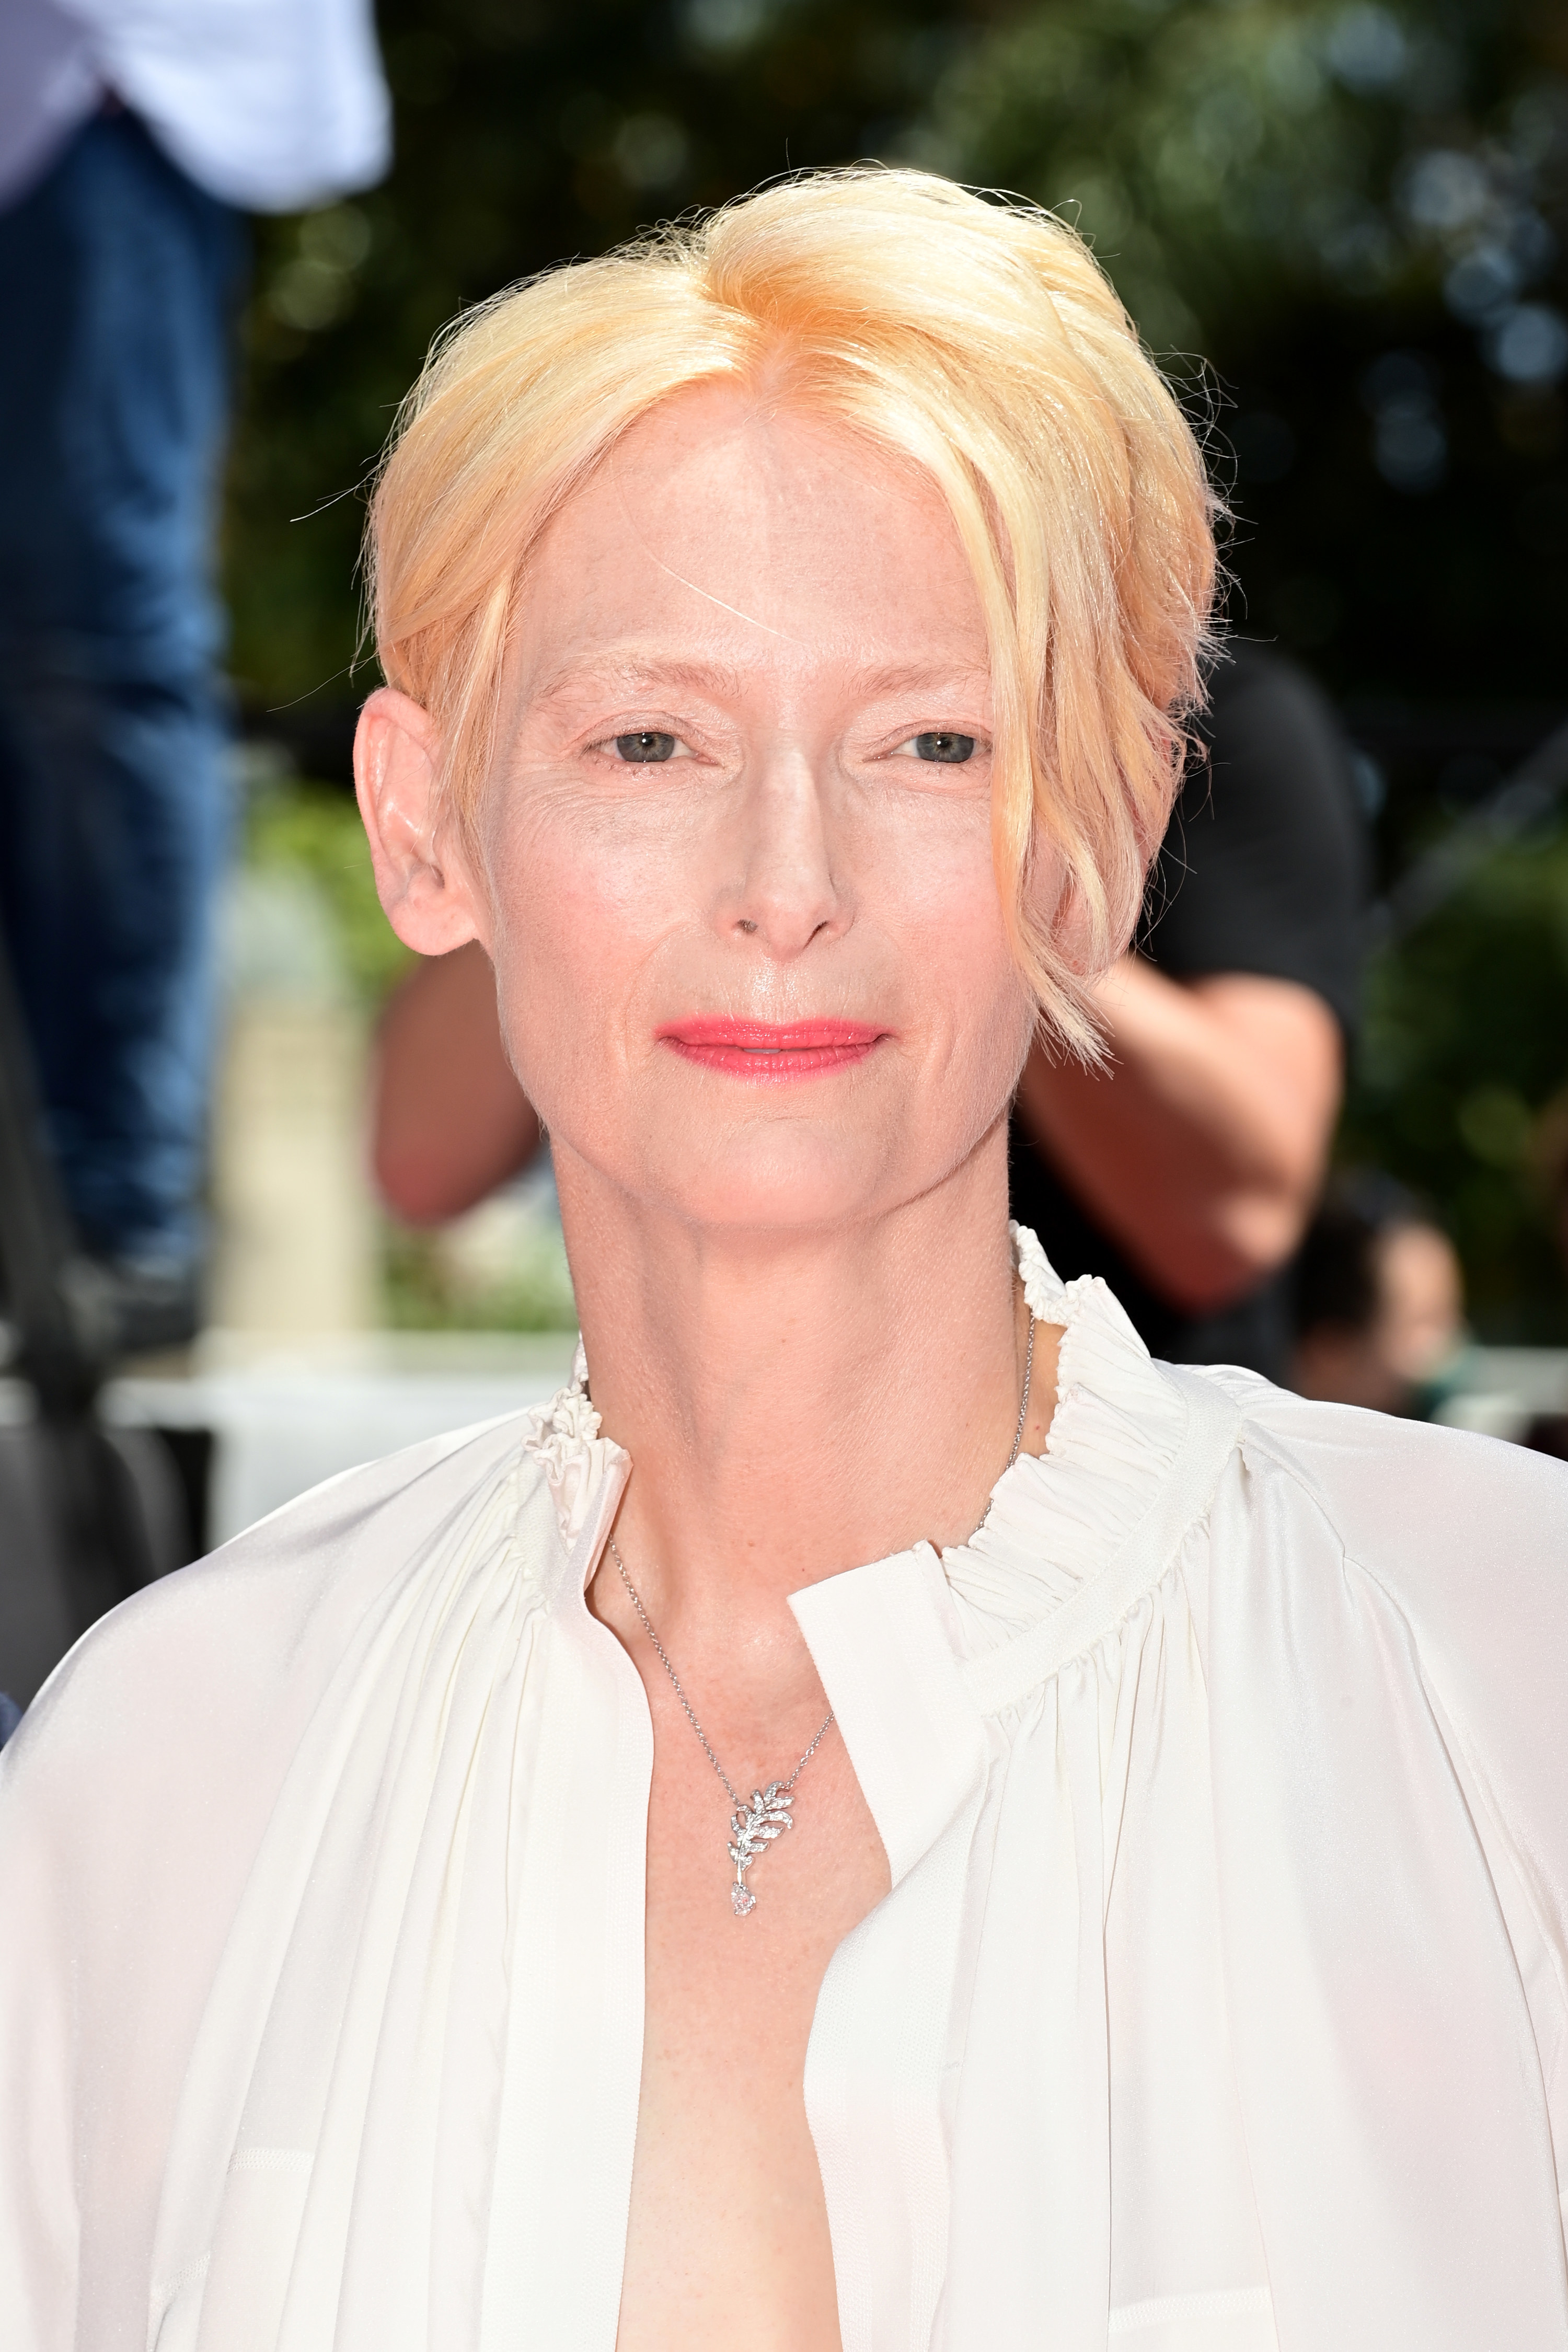 Tilda Swinton appears at the Cannes Film Festival